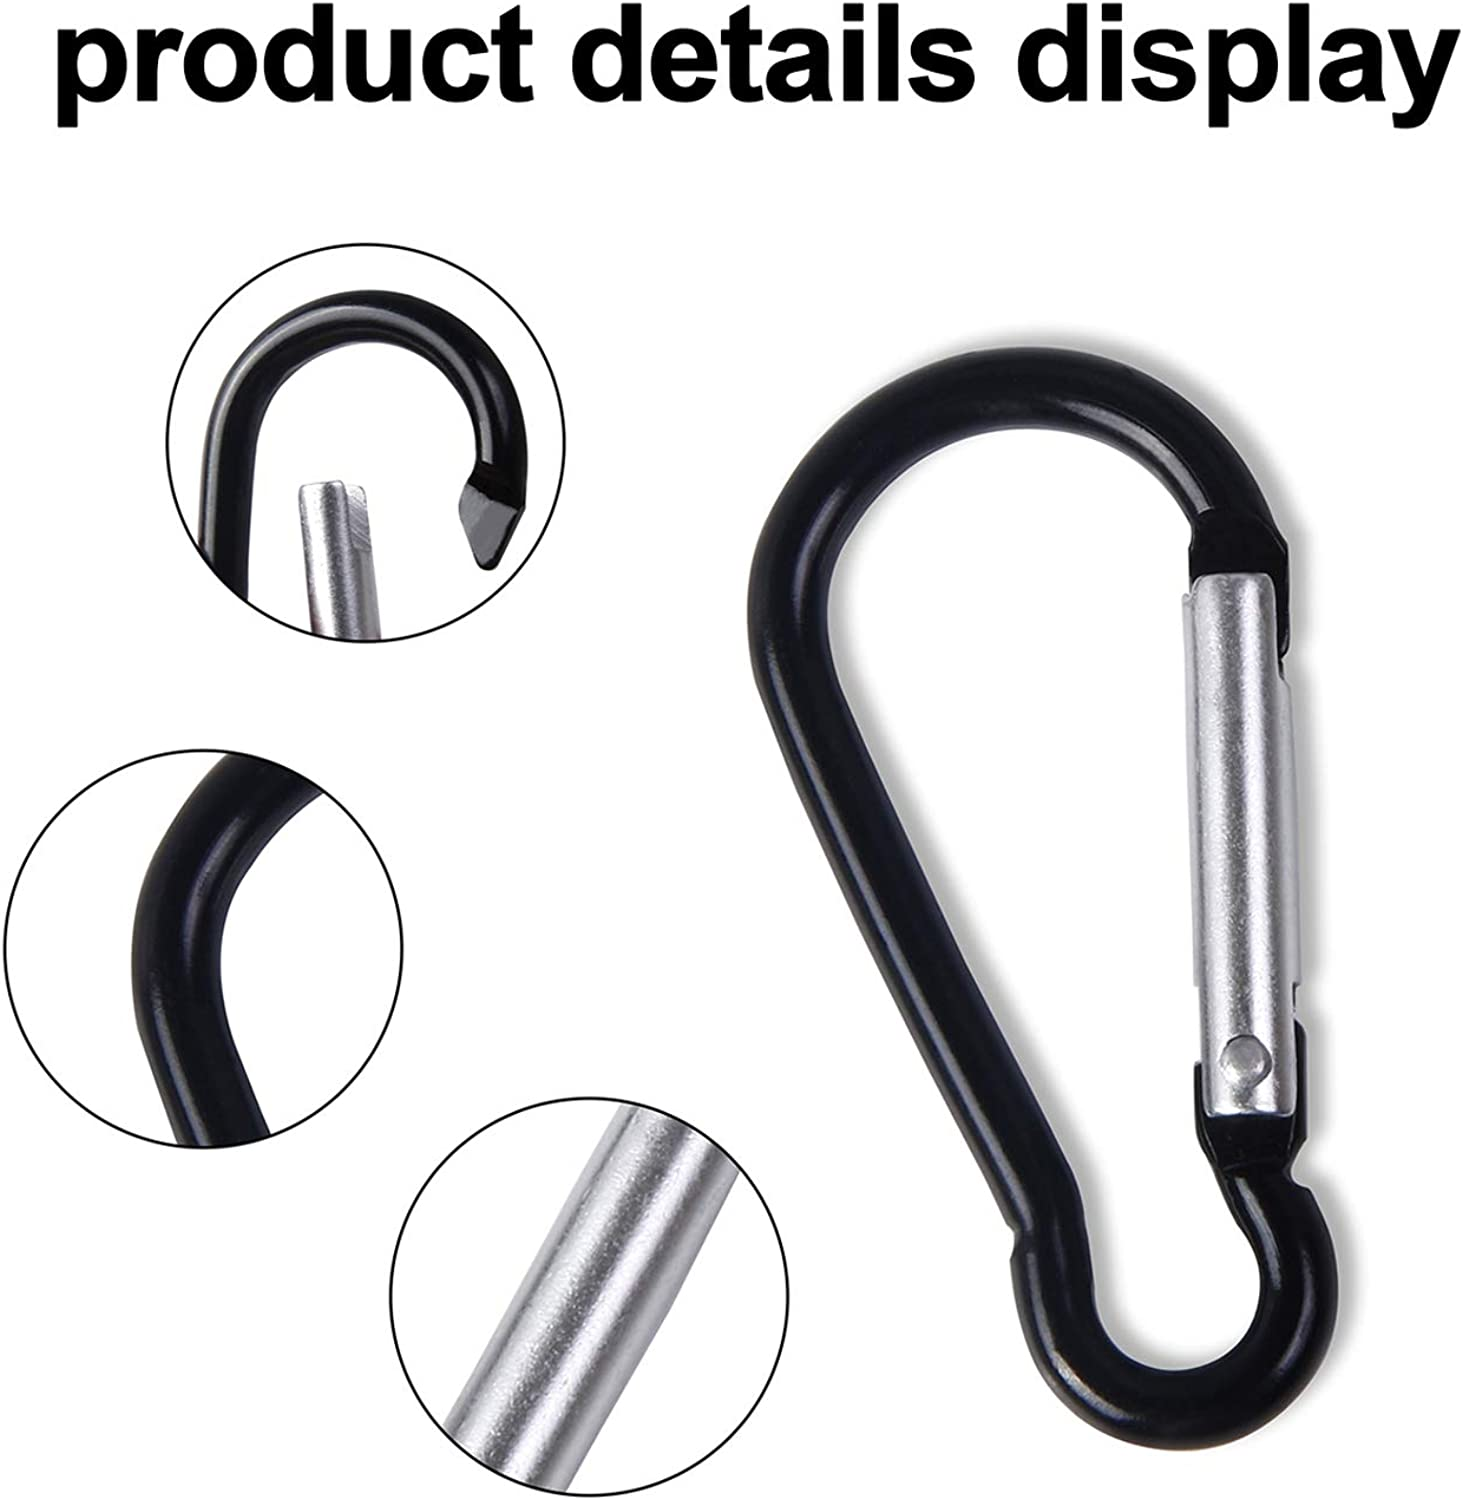 UPINS 100 Pcs New Design Multicolored Aluminum Keychain Carabiner Spring Clip D Shape Hook Durable Sport Accessories for Outdoor Home RV Fishing Hiking Traveling Backpack: Clothing